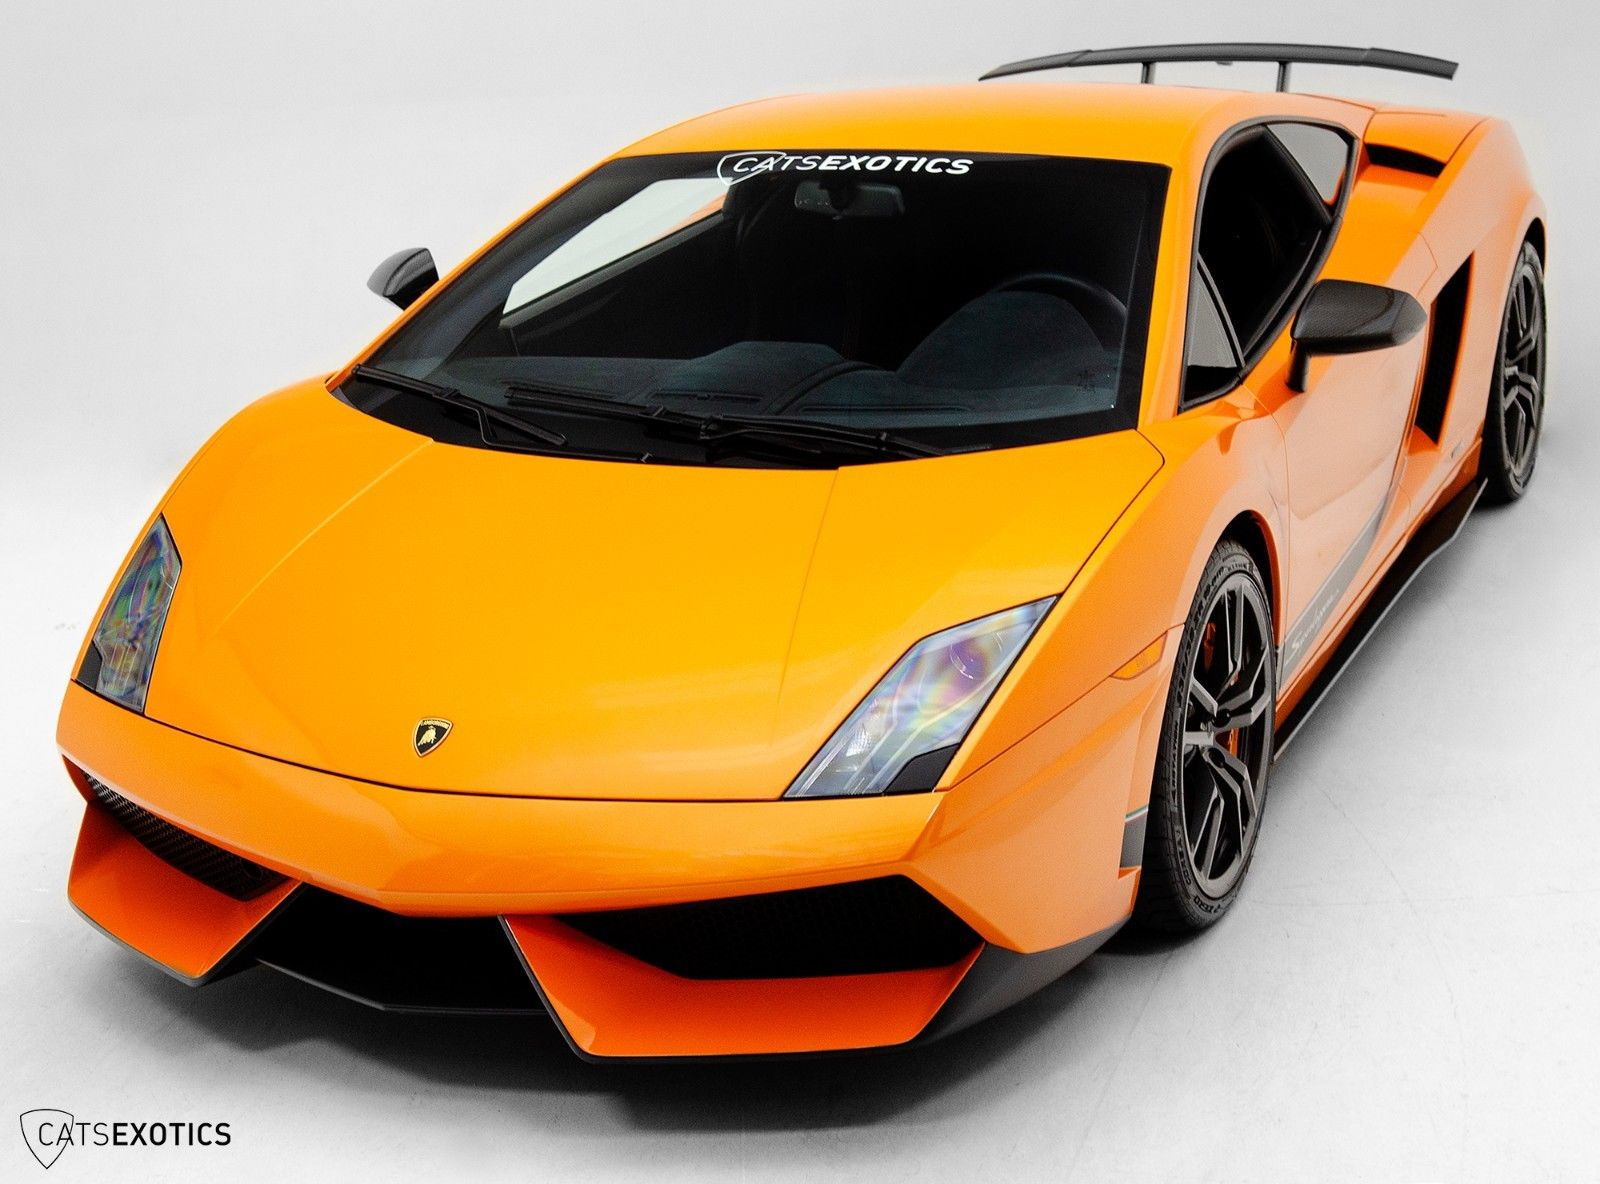 Awesome 2011 Lamborghini Gallardo Superleggera Lp570 4 Carbon Fiber